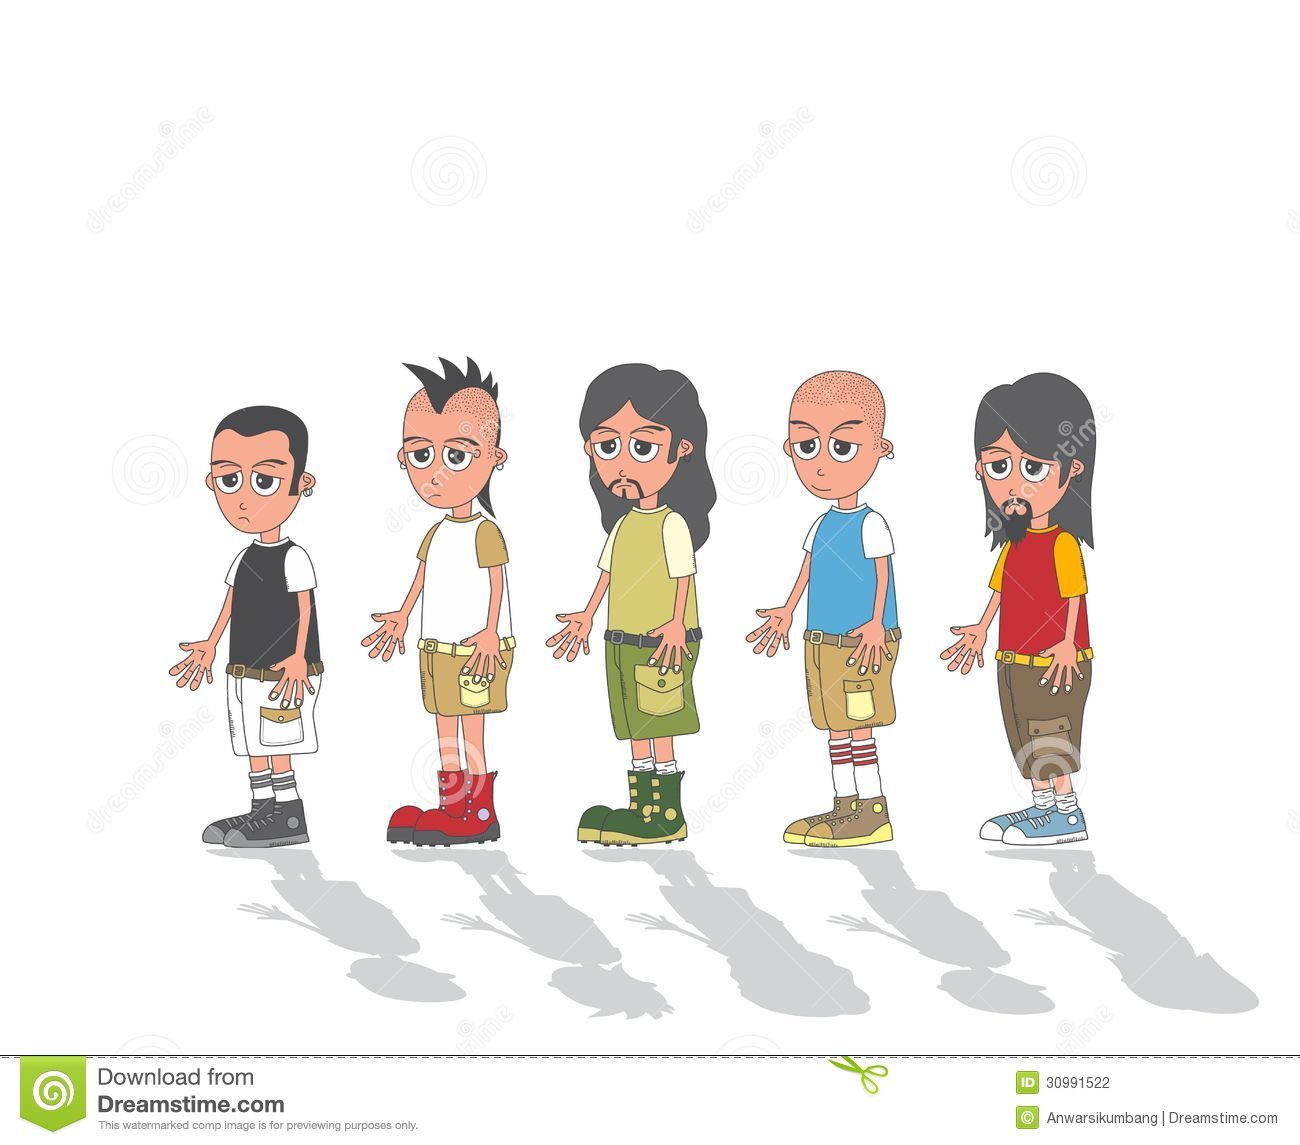 Illustrator Character Design Freelance : Man in group cartoon character stock vector image